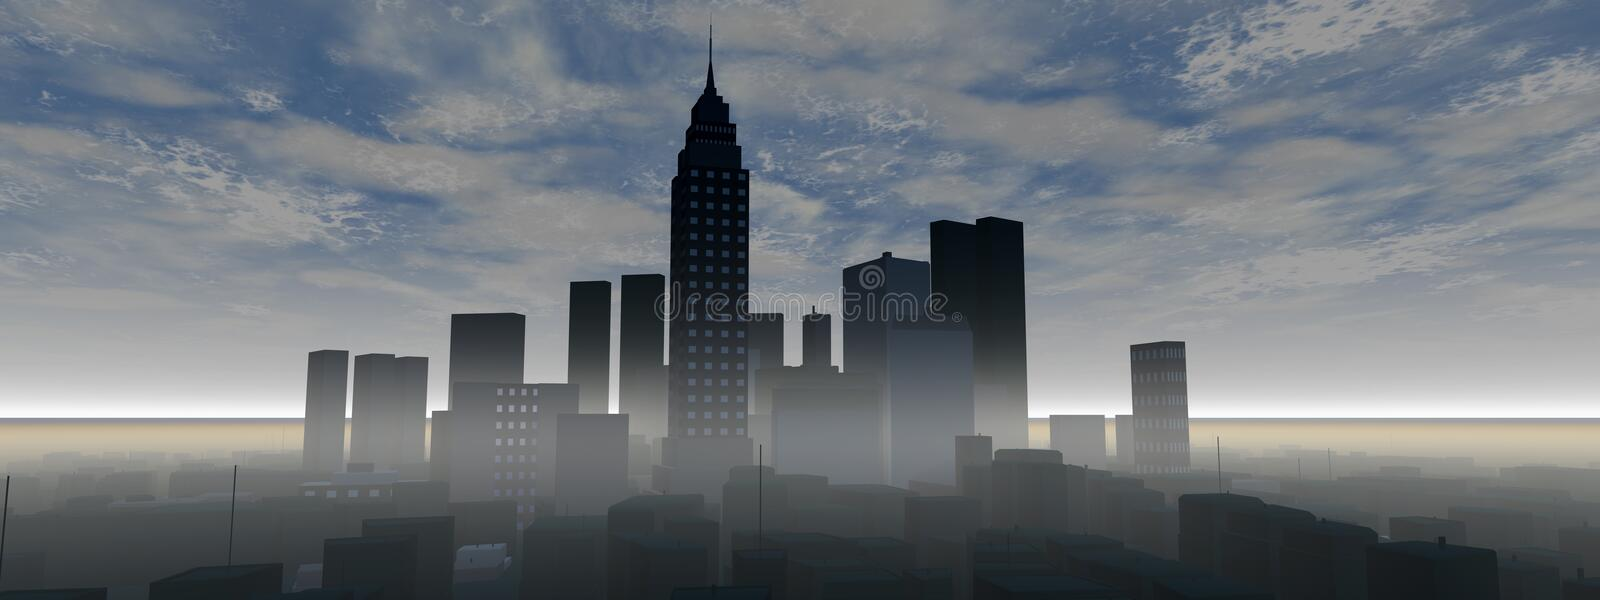 Download Panoramic City Skyline Royalty Free Stock Photography - Image: 19874457